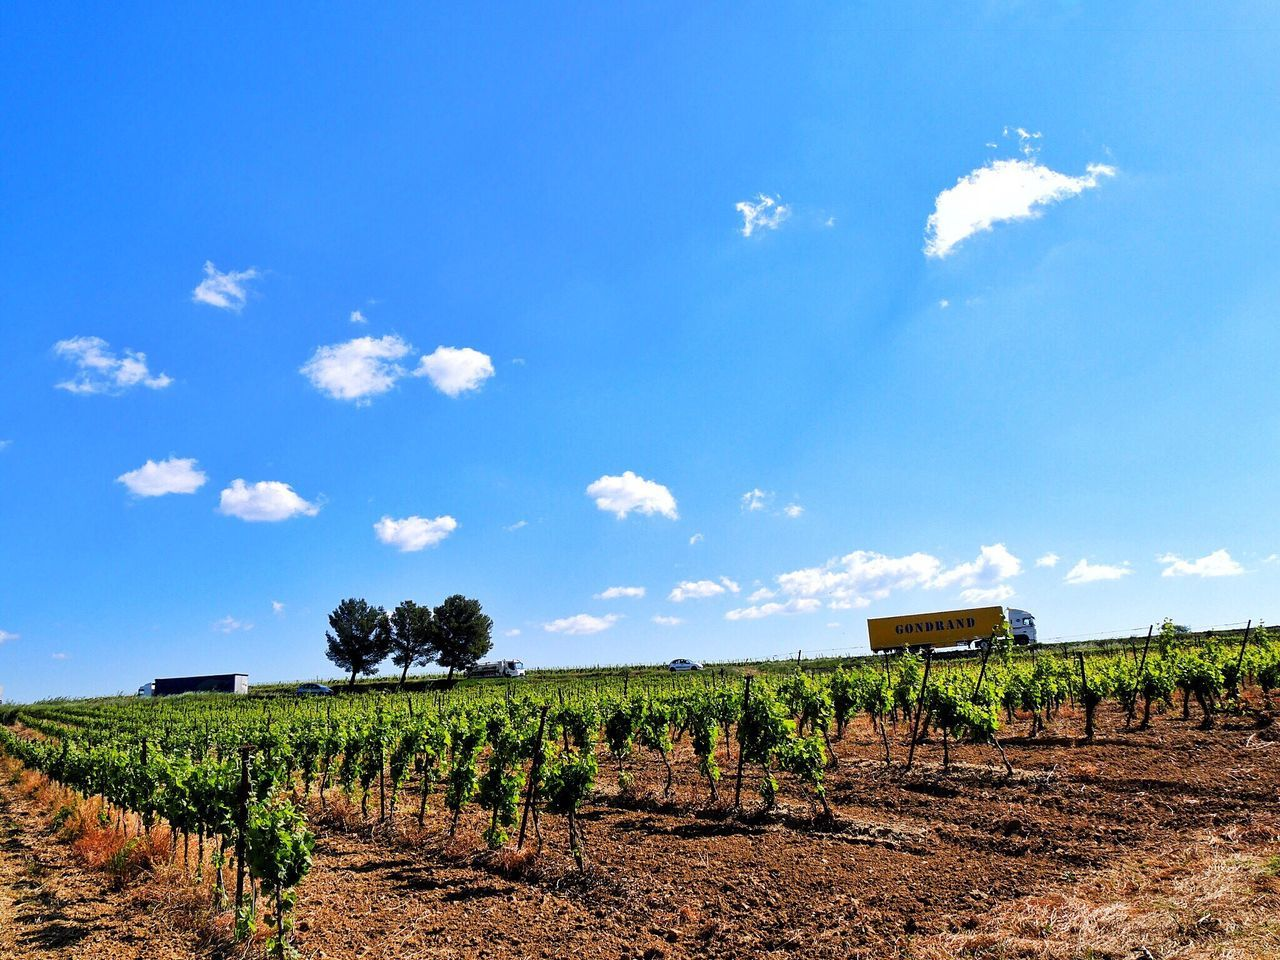 Agriculture Field Growth Farm Landscape Vineyard Rural Scene Crop  Sky Winemaking Nature Tranquility No People Scenics Cloud - Sky Day Beauty In Nature Outdoors Tree Trucks